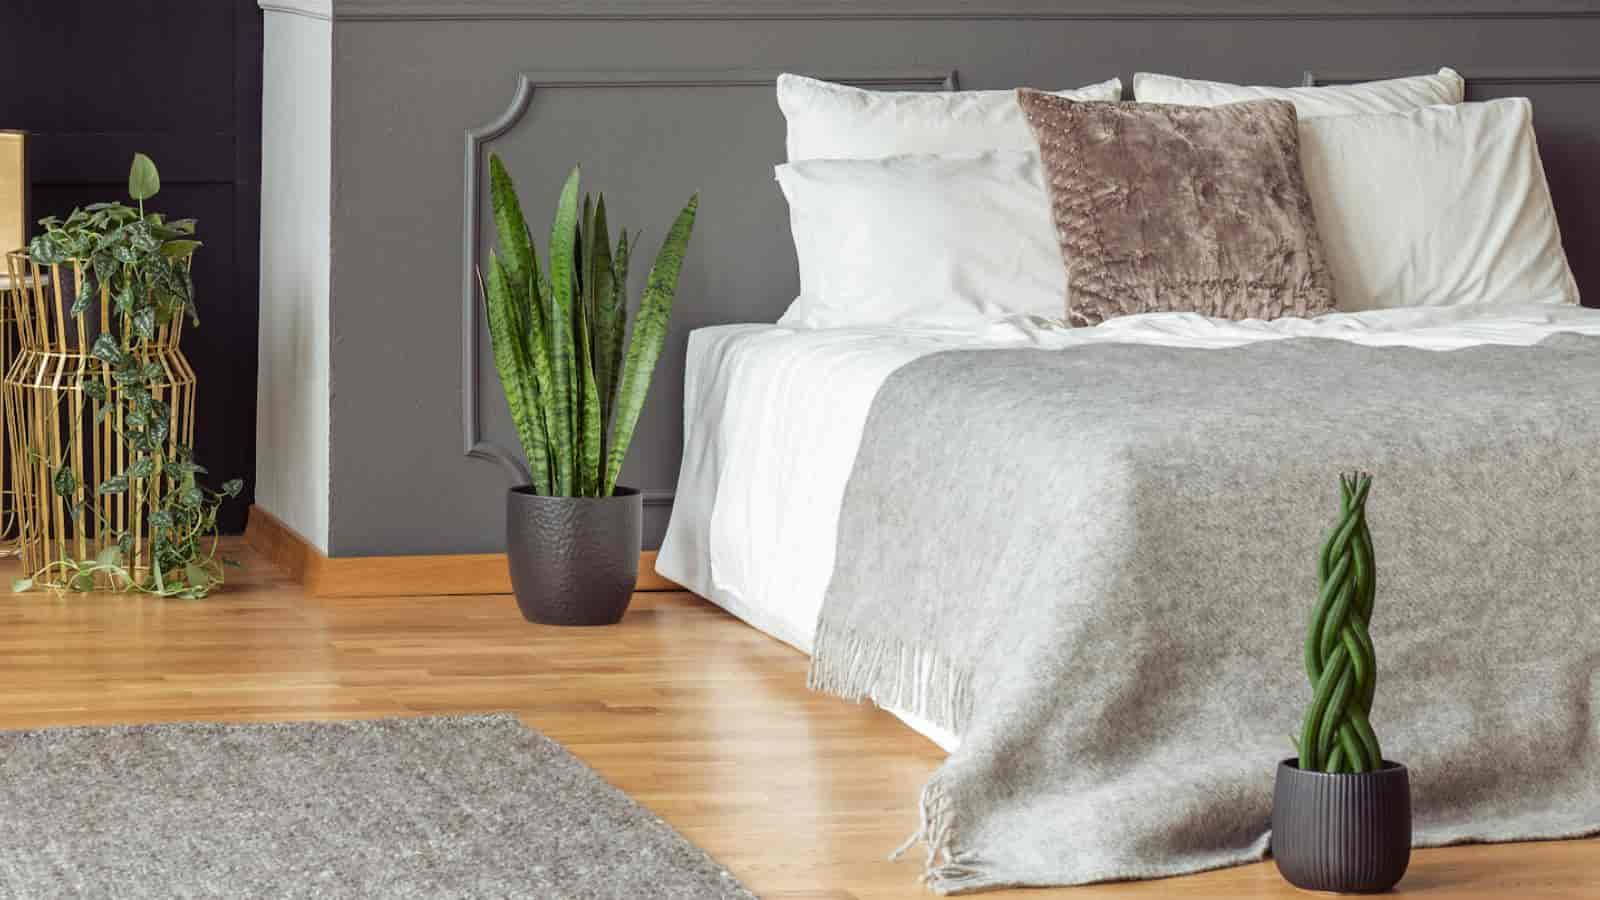 bedroom with snake plants